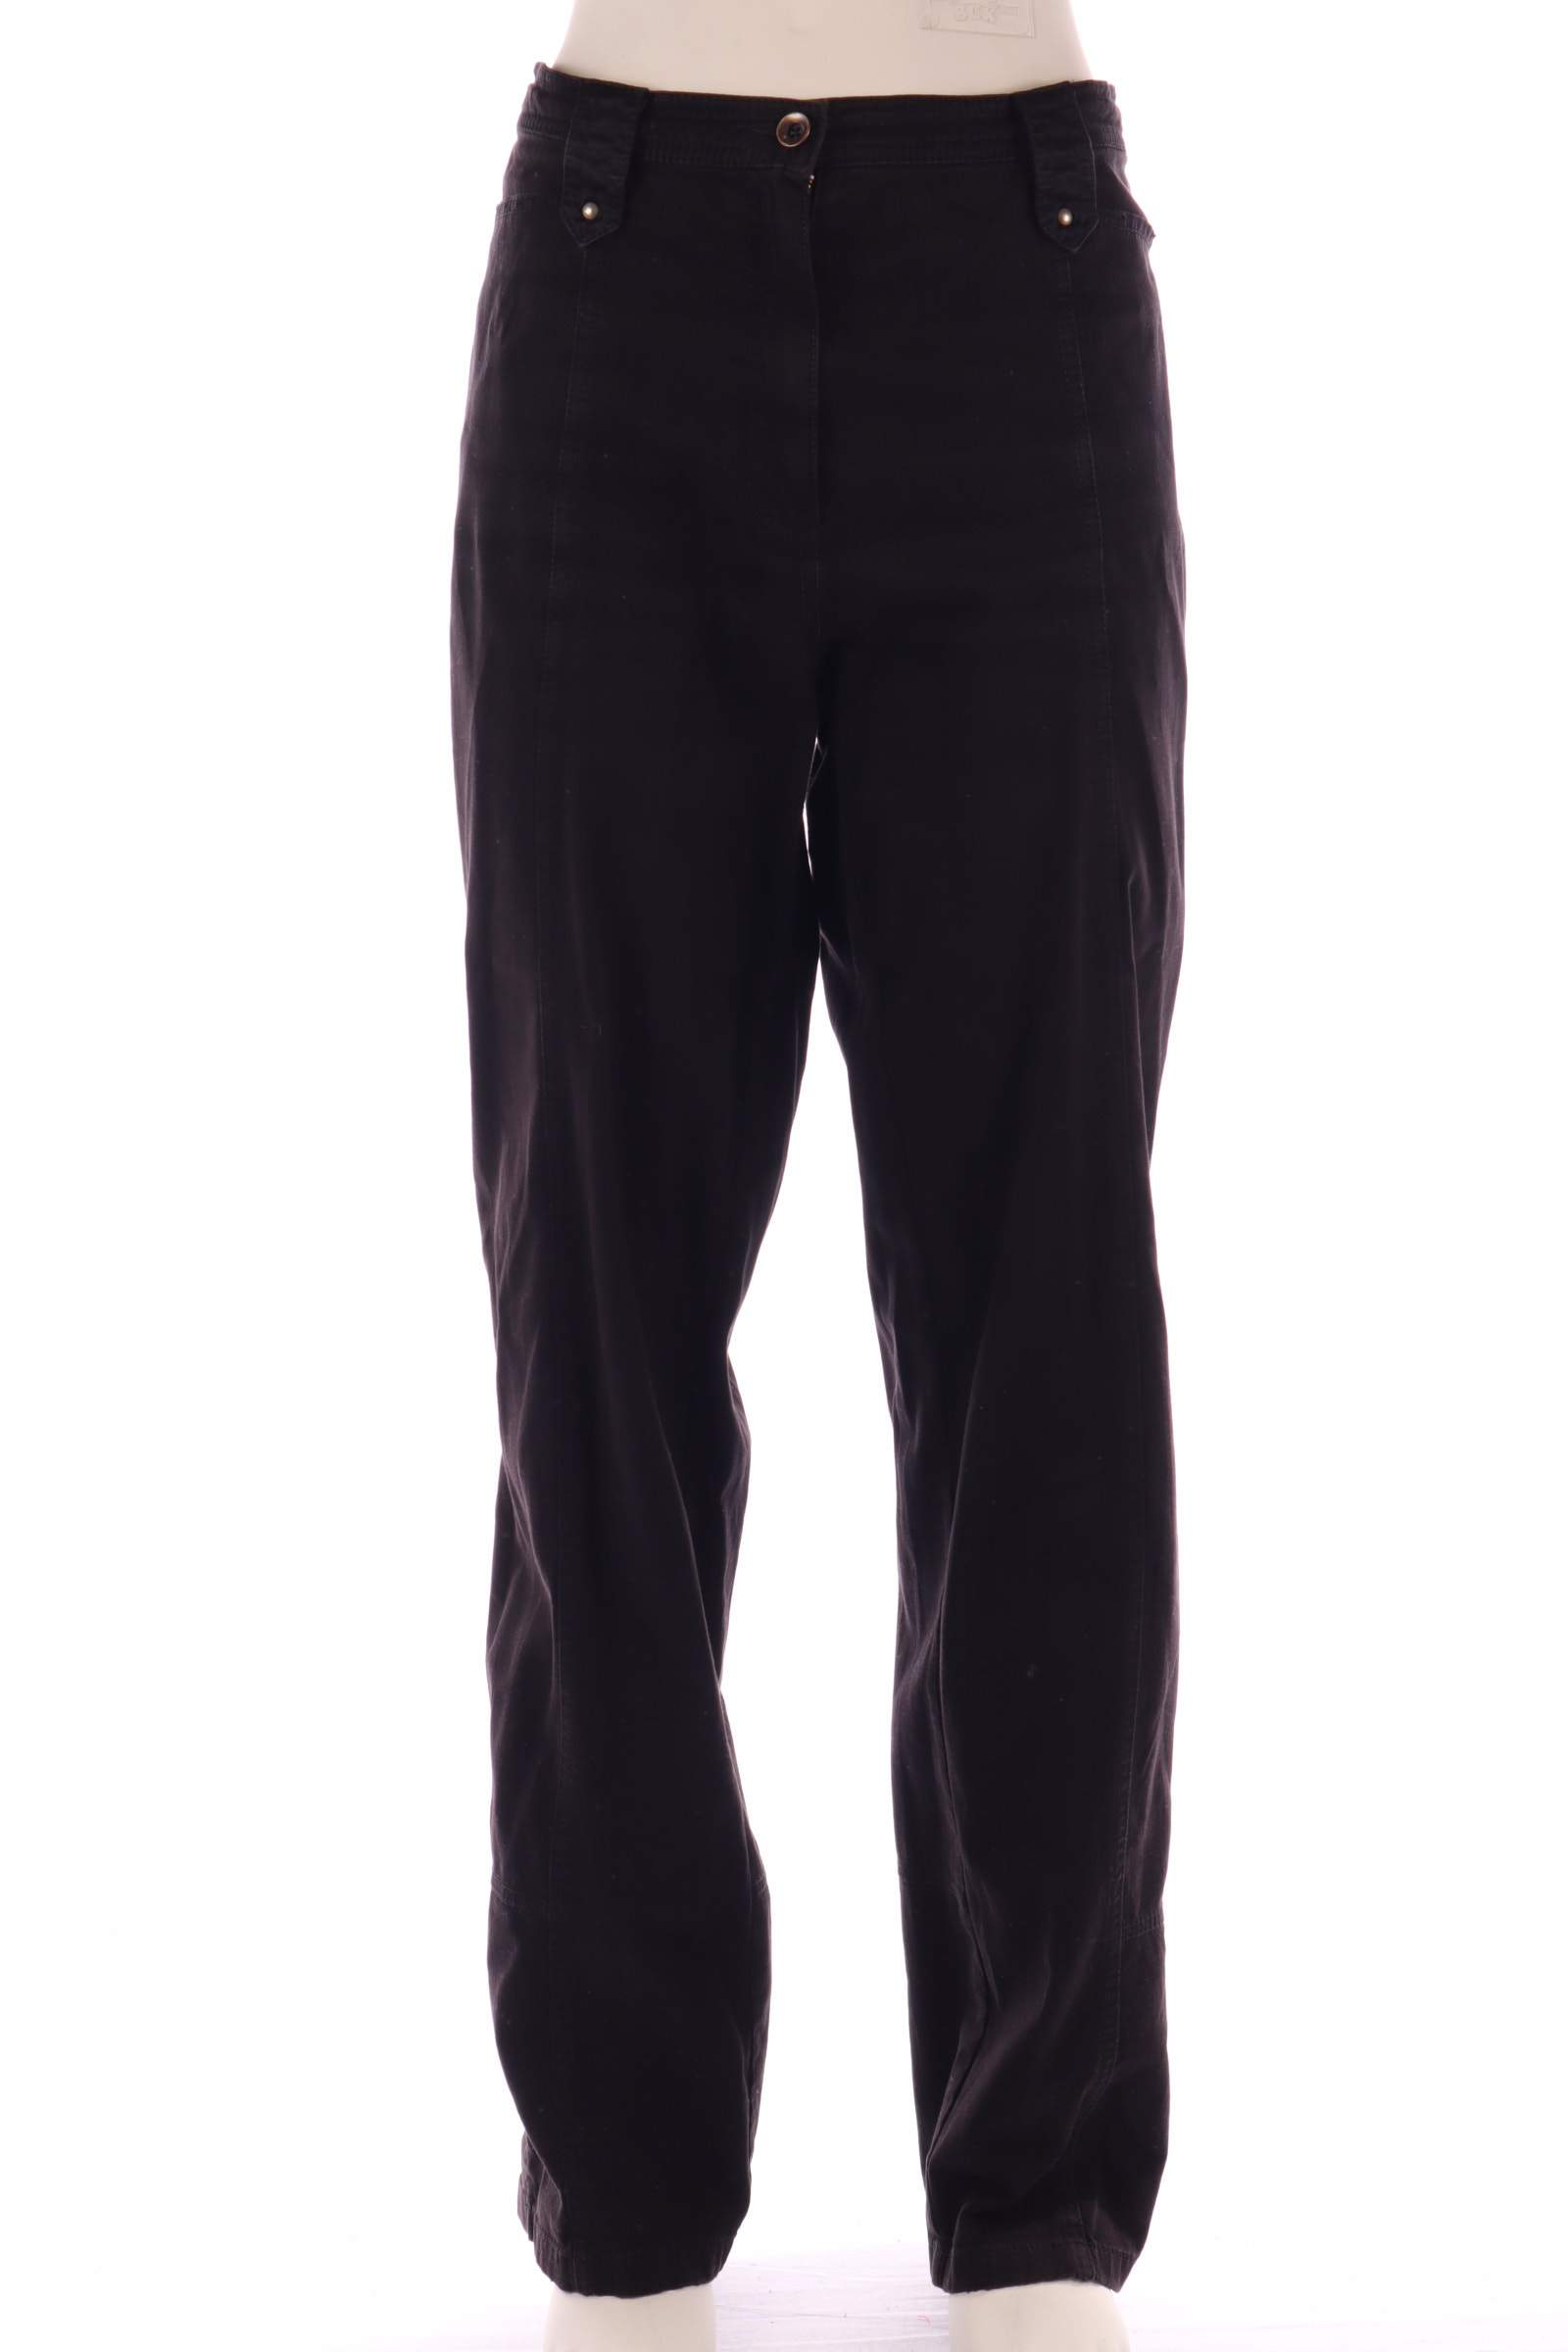 Gelco Black Jeans - upty.store